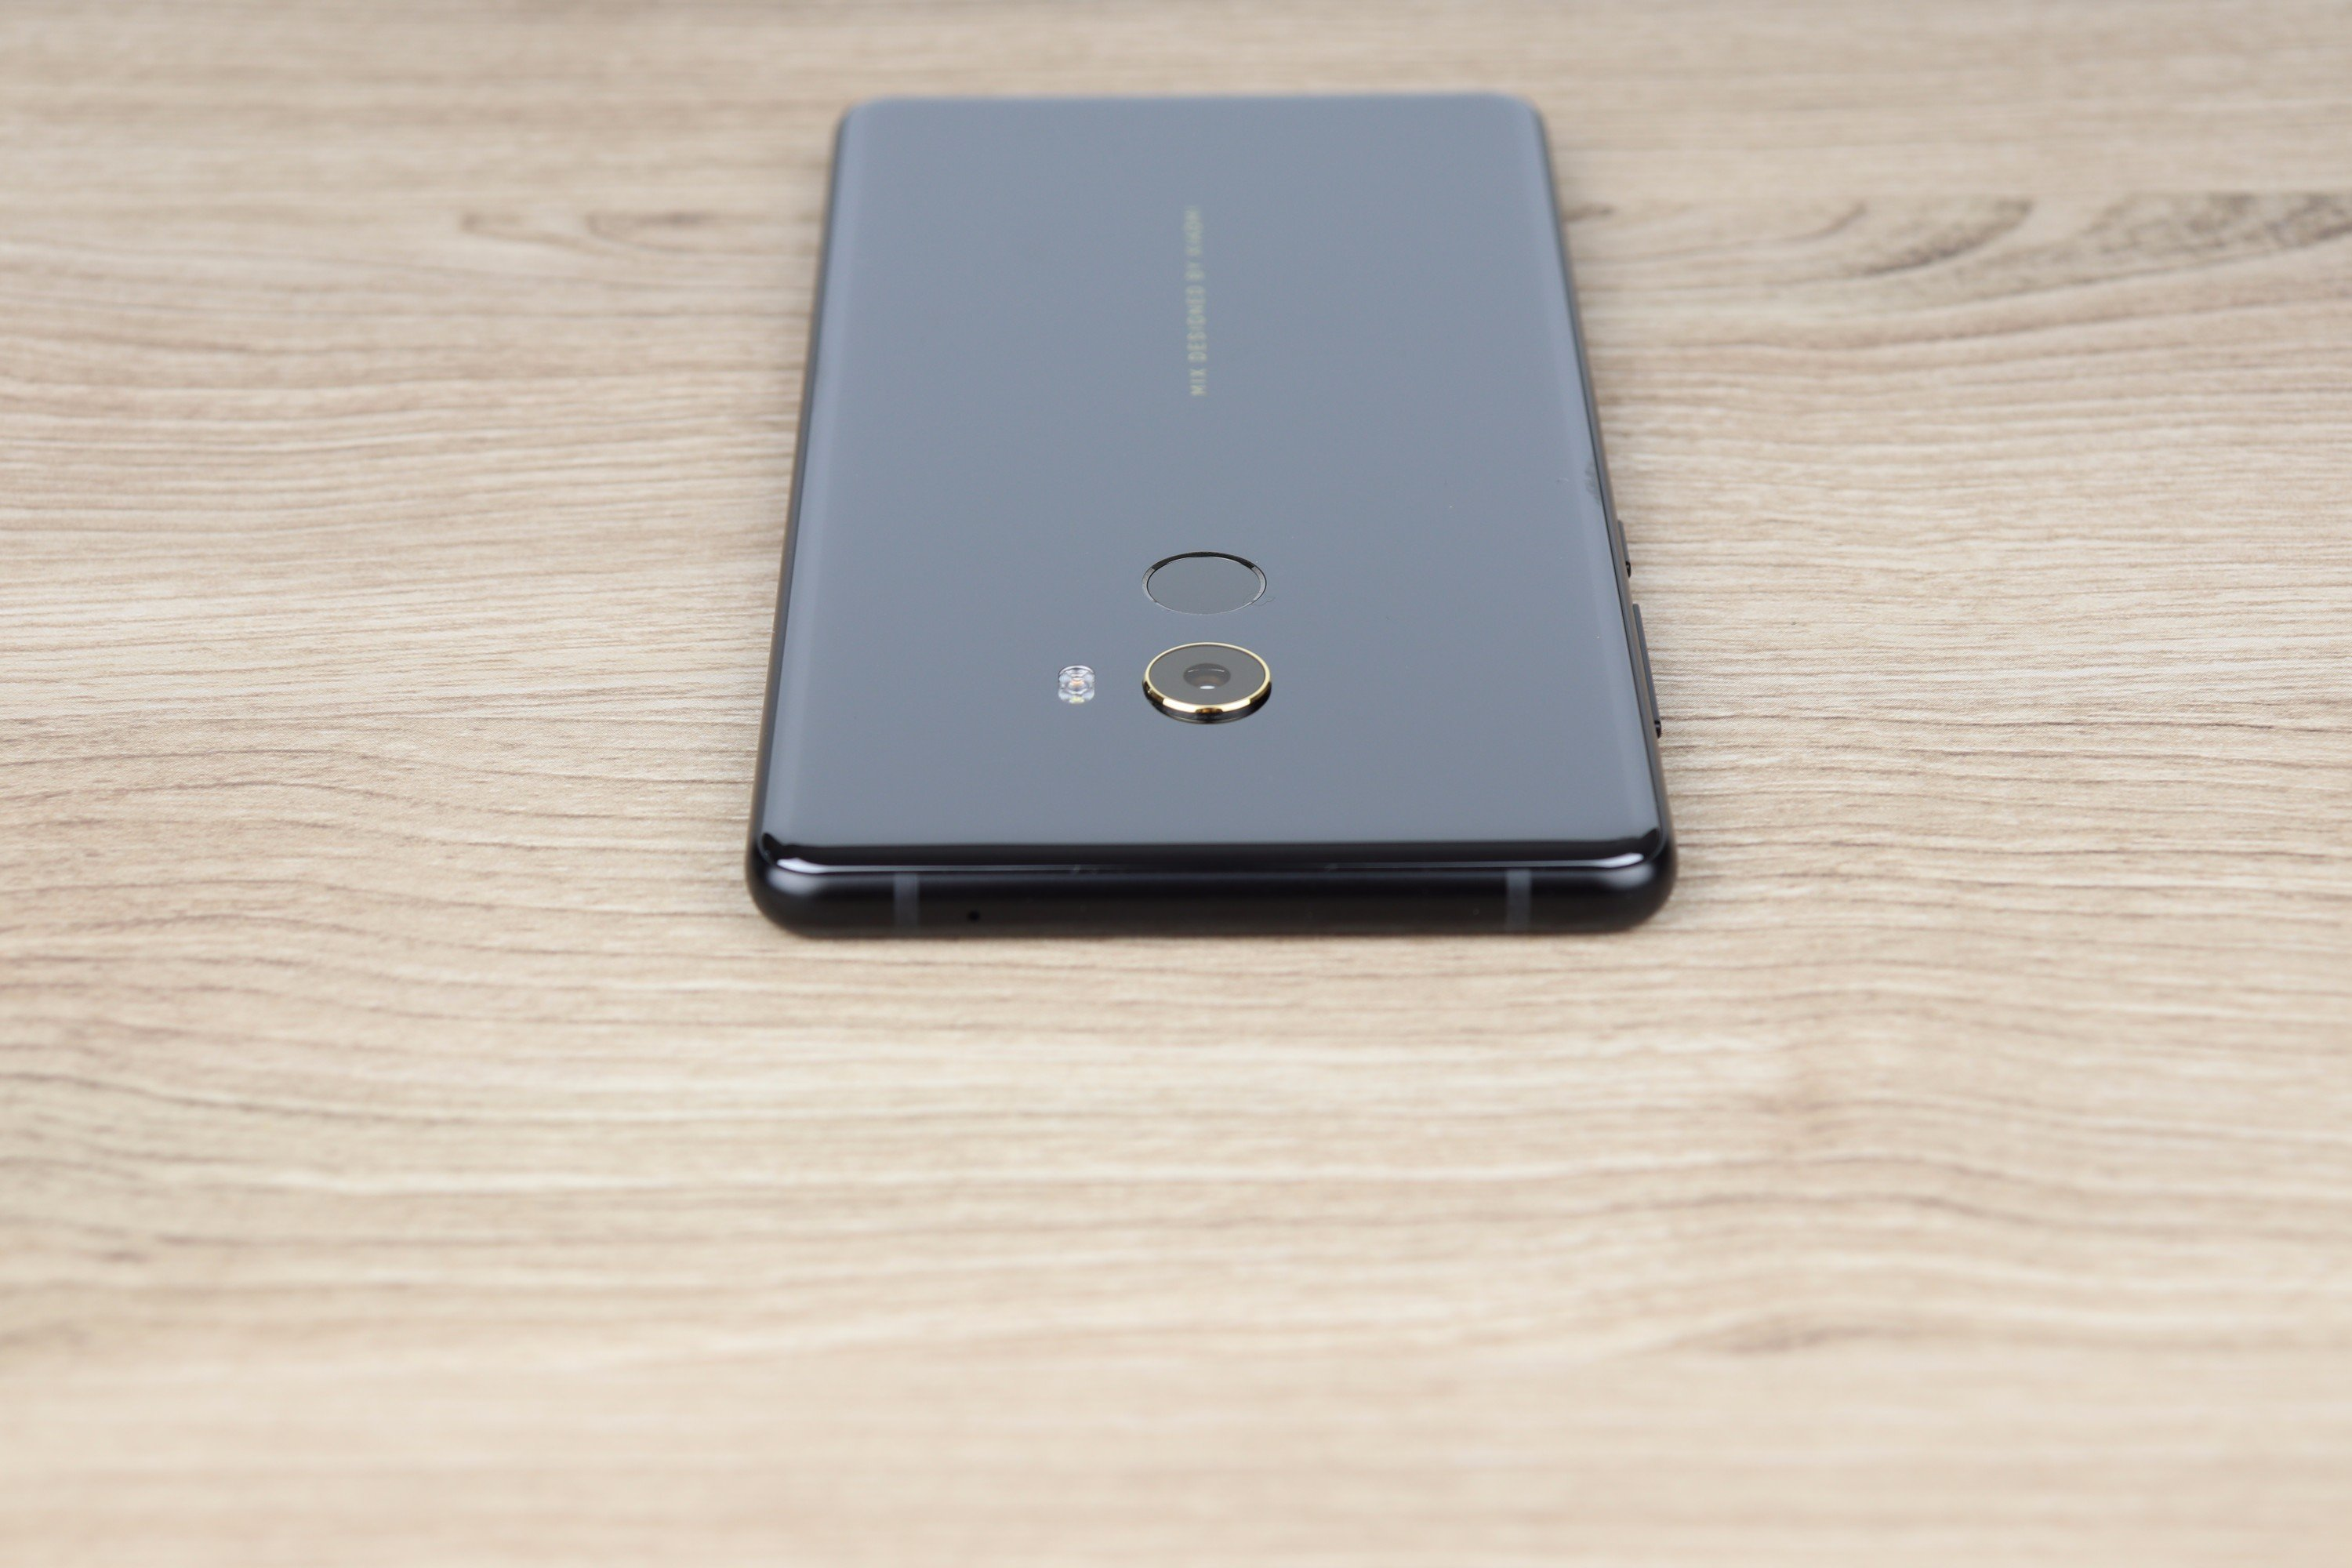 Xiaomi Mi Mix 2 Design and build quality